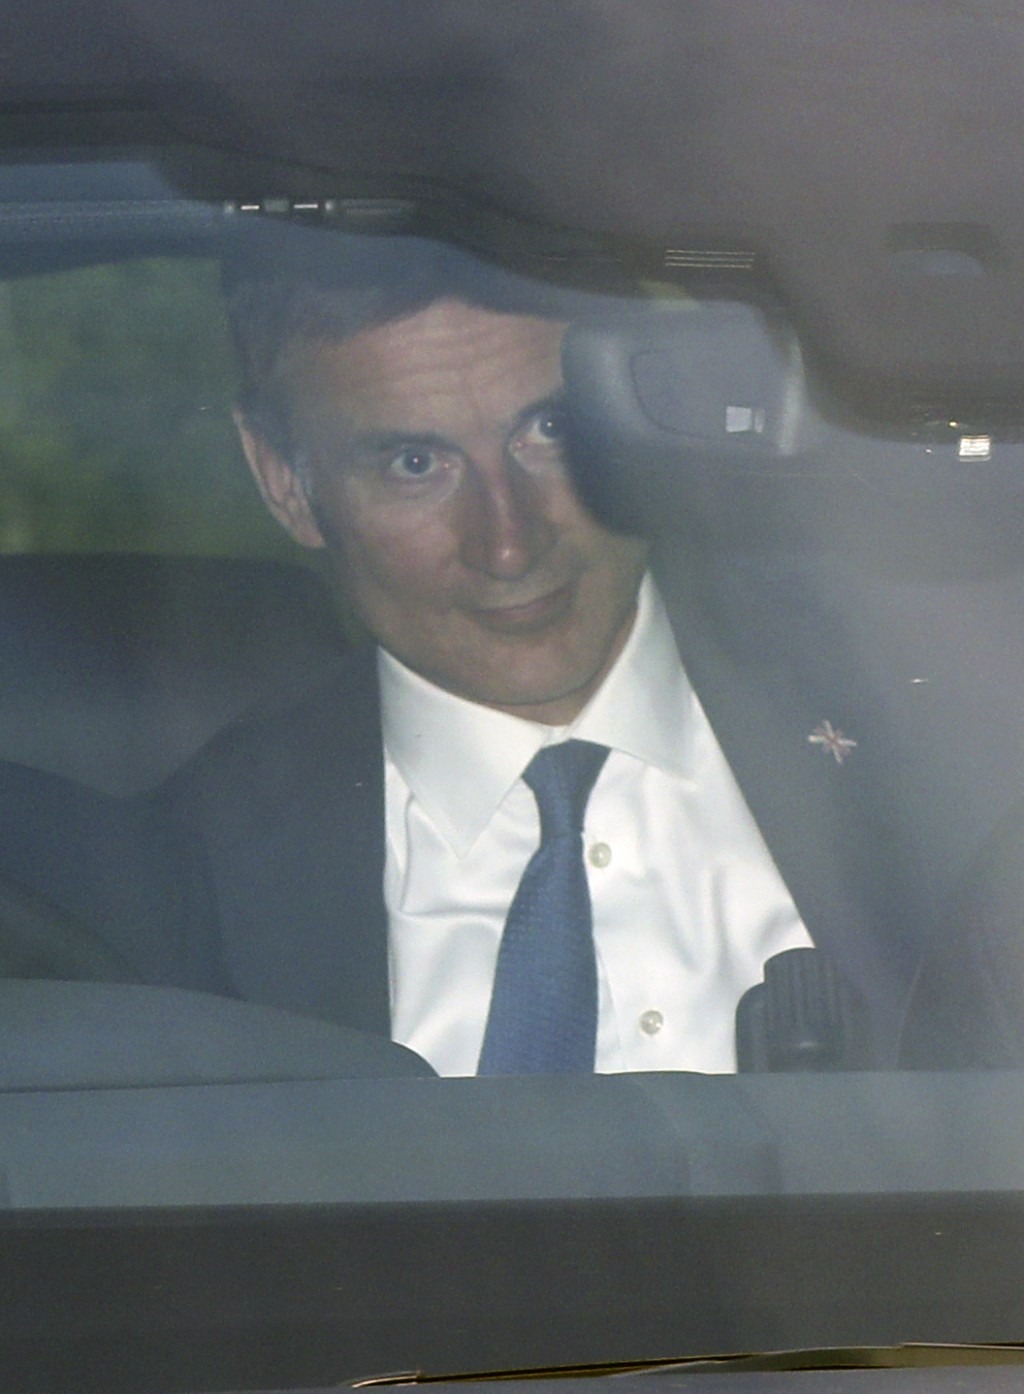 Conservative party leadership contender Jeremy Hunt arrives at the television studios ahead of a scheduled live television debate for the Conservative...